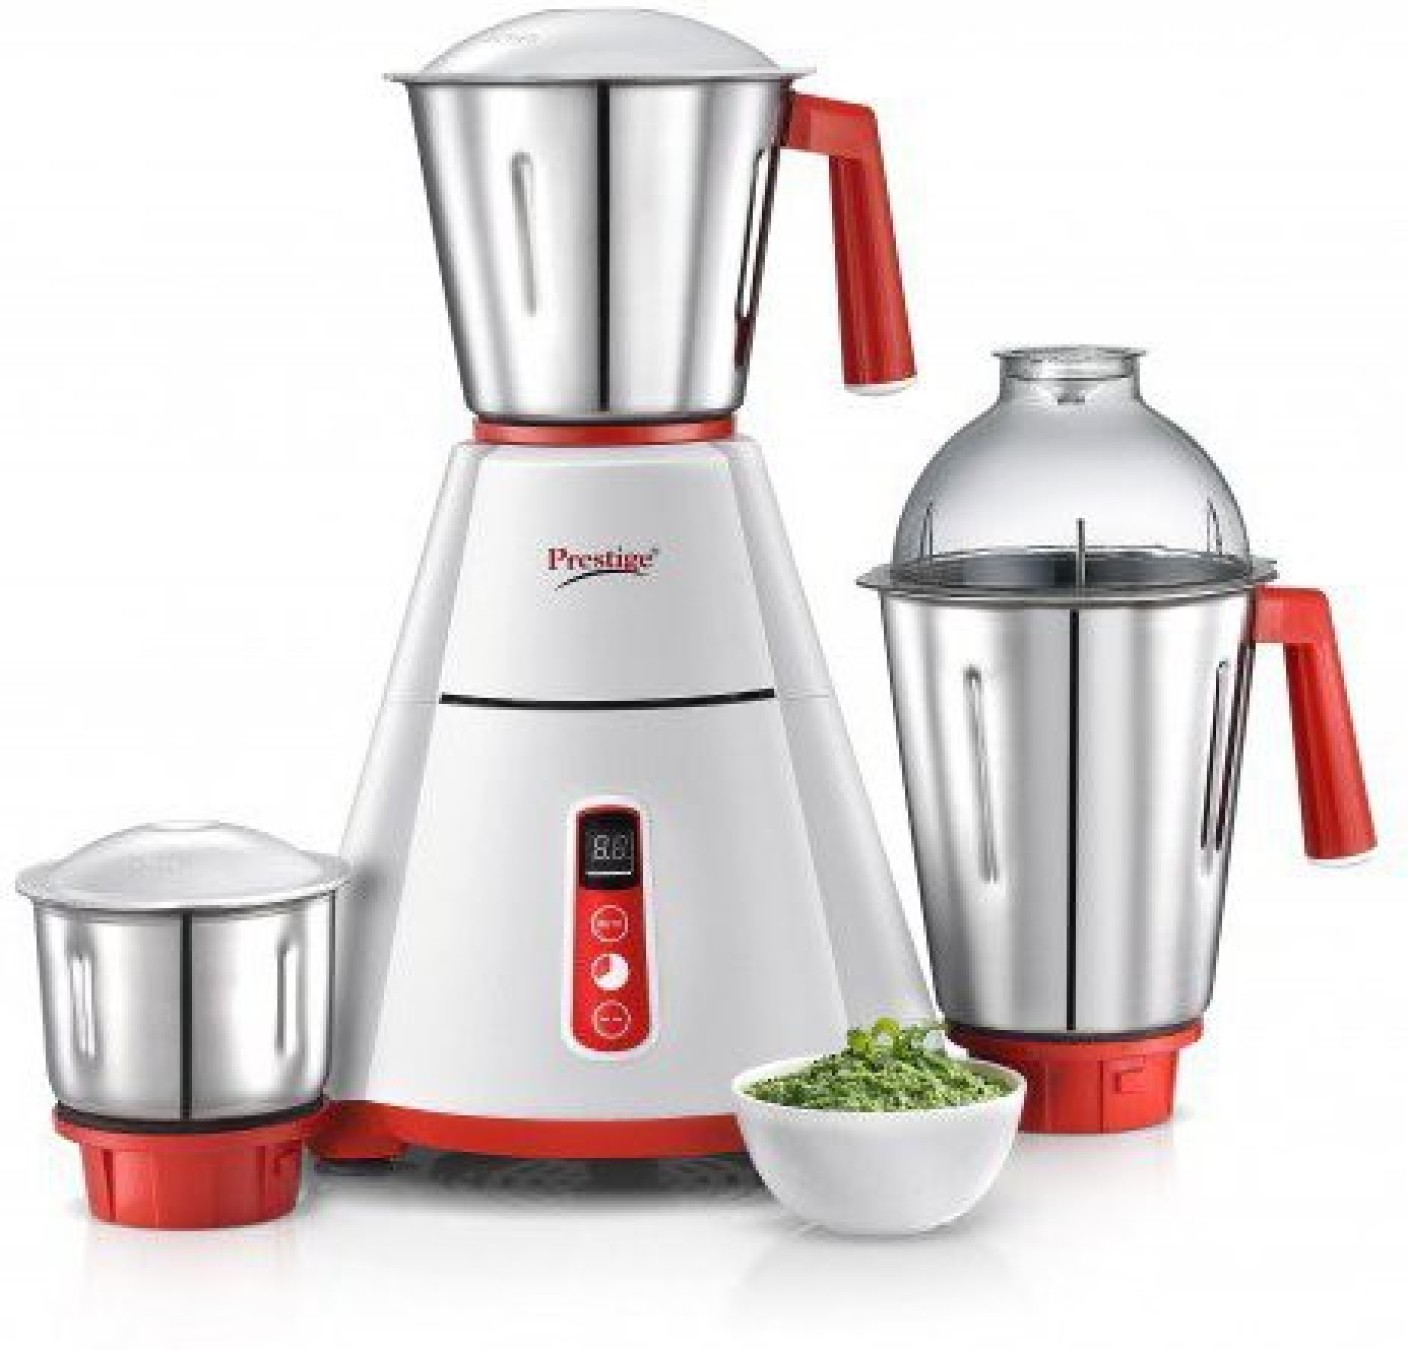 Prestige Kitchen Appliances Prestige Automatik 750 W Mixer Grinder Price In India Buy